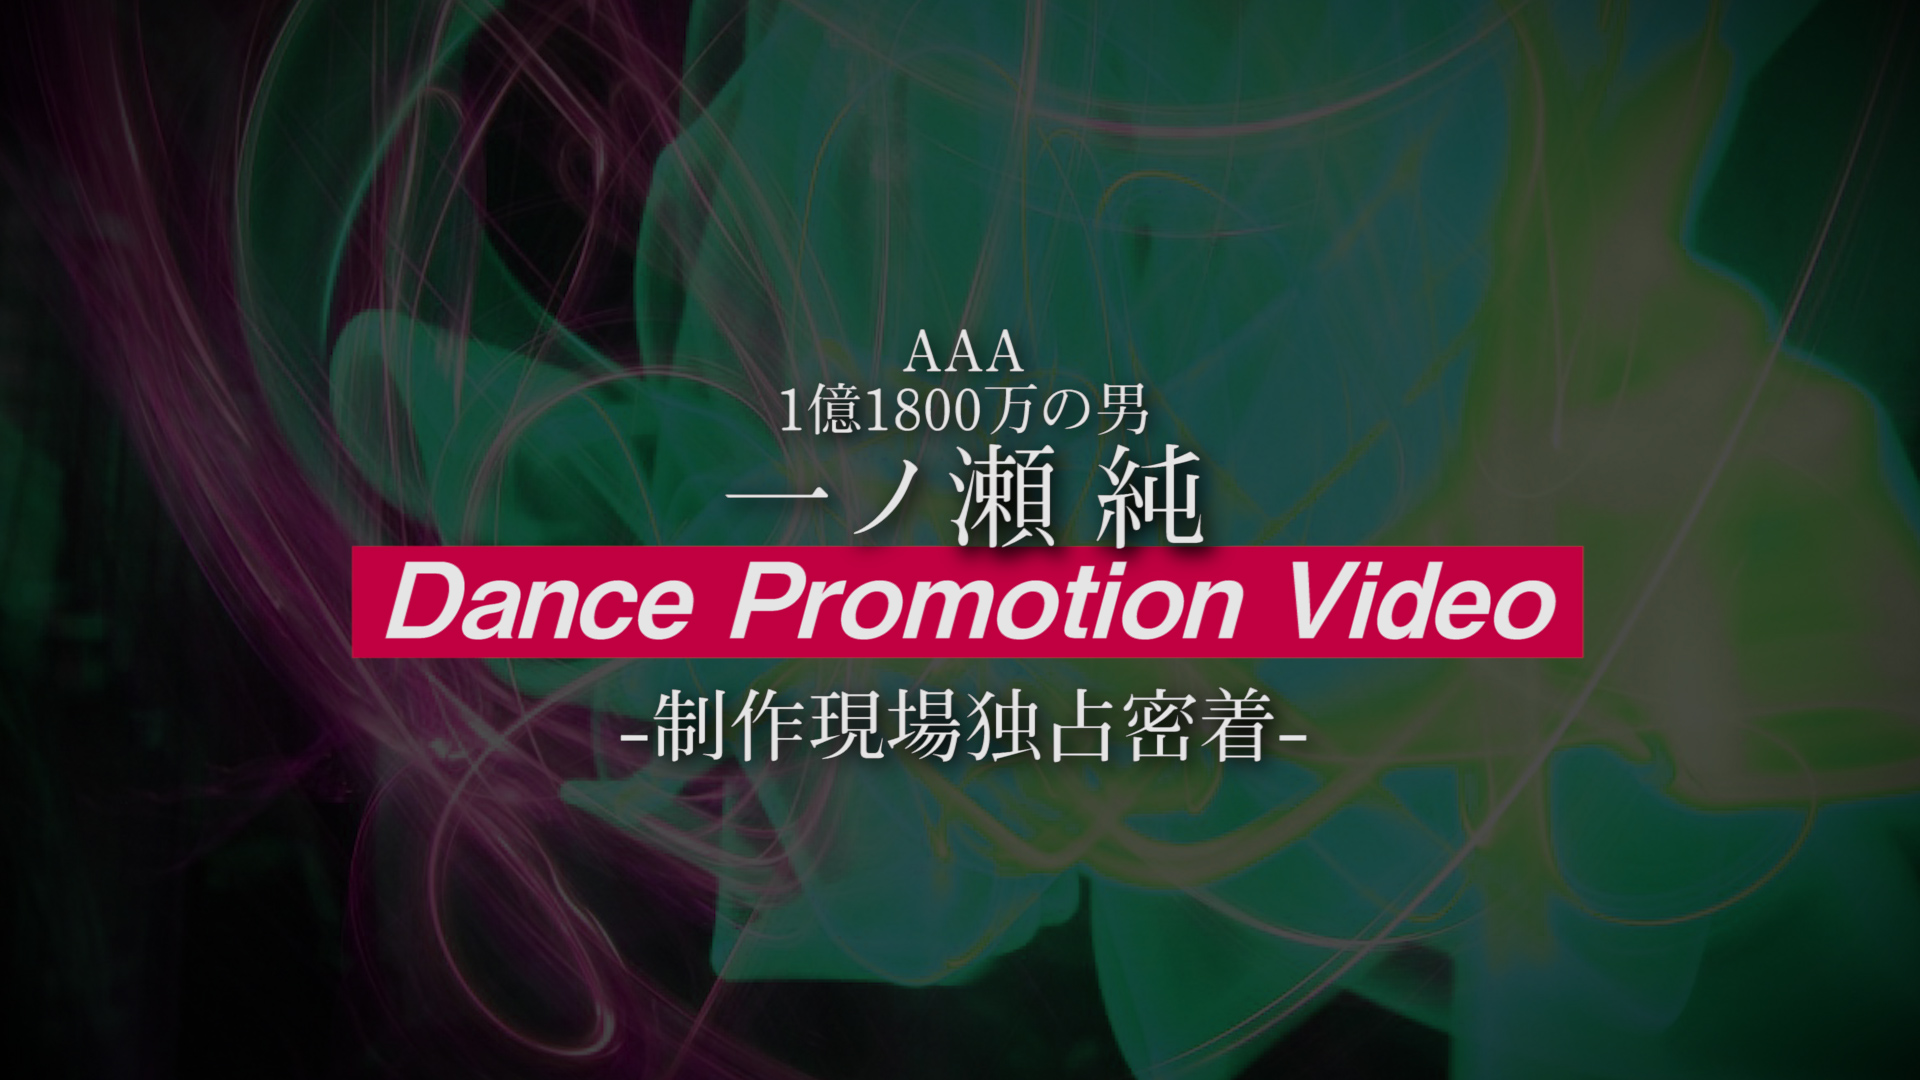 一ノ瀬純DancePromotionVideo